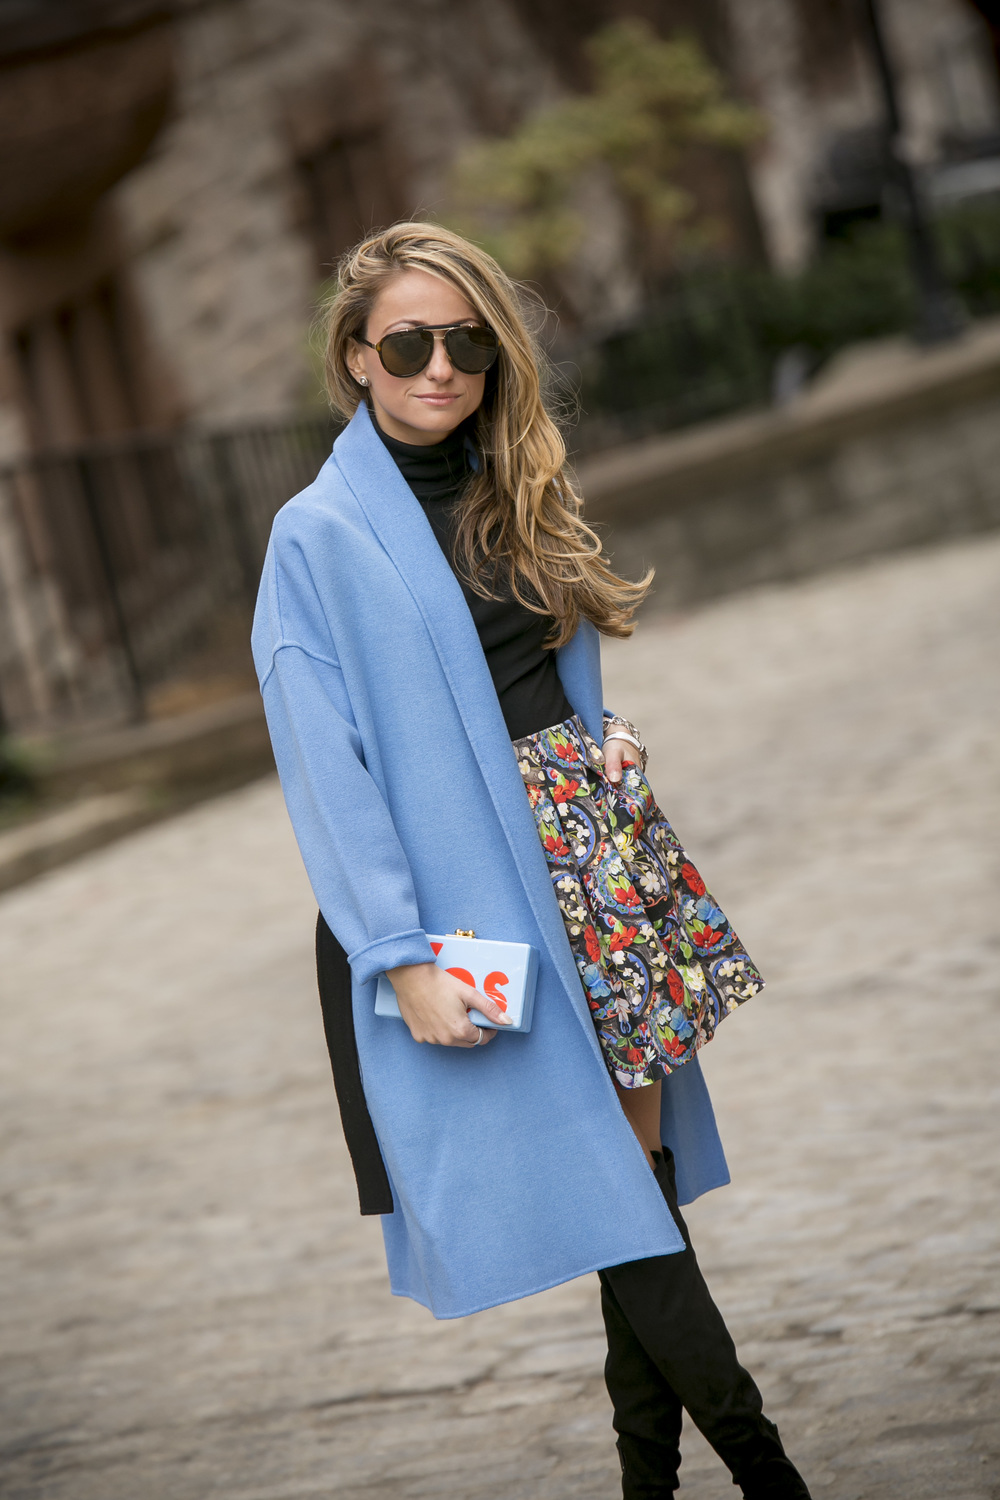 Maje Wool coat, Alice and Olivia Skirt, and Edie Parker Yes clutch worn by fashion blogger Lauren Recchia. New York Fashion Week.